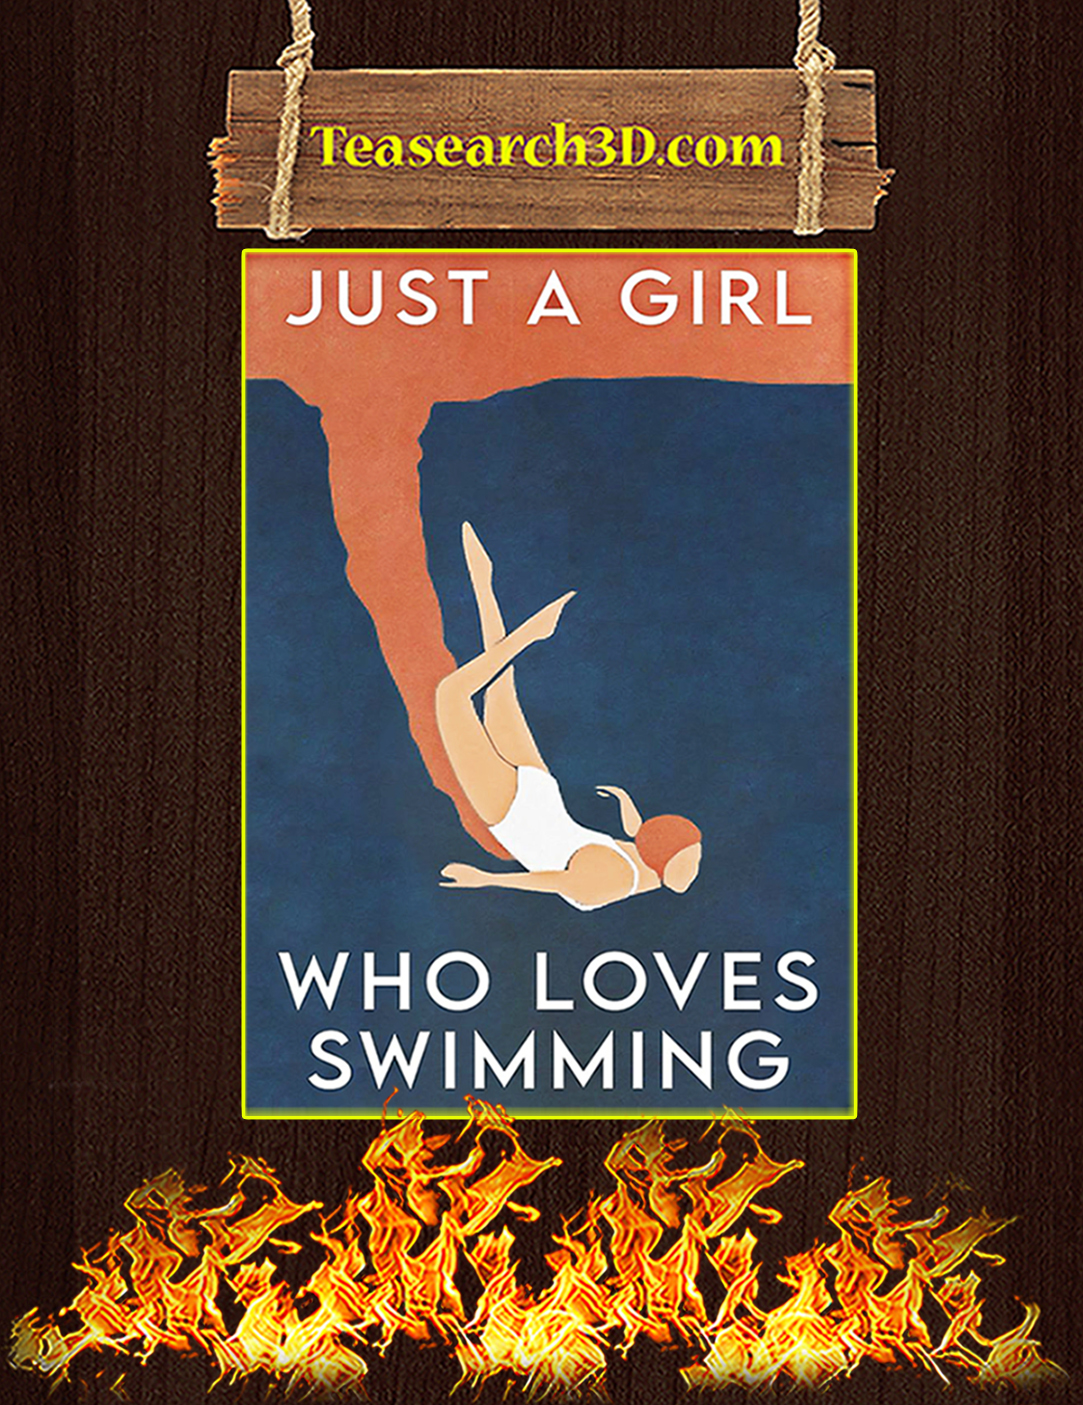 Swimming Just a girl who loves poster A2